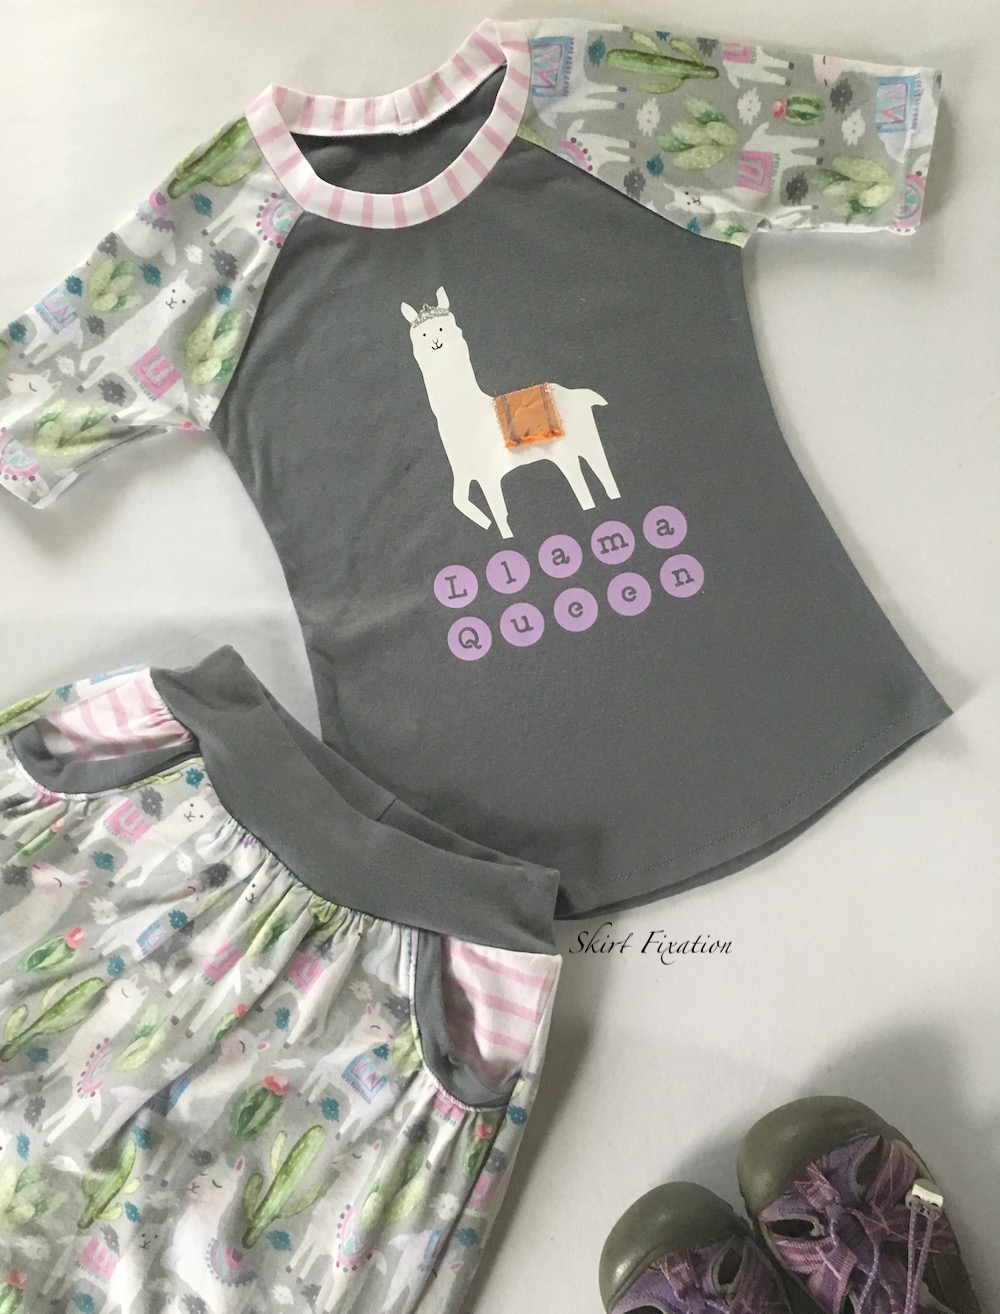 Llama Queen outfit sewn by Skirt Fixation